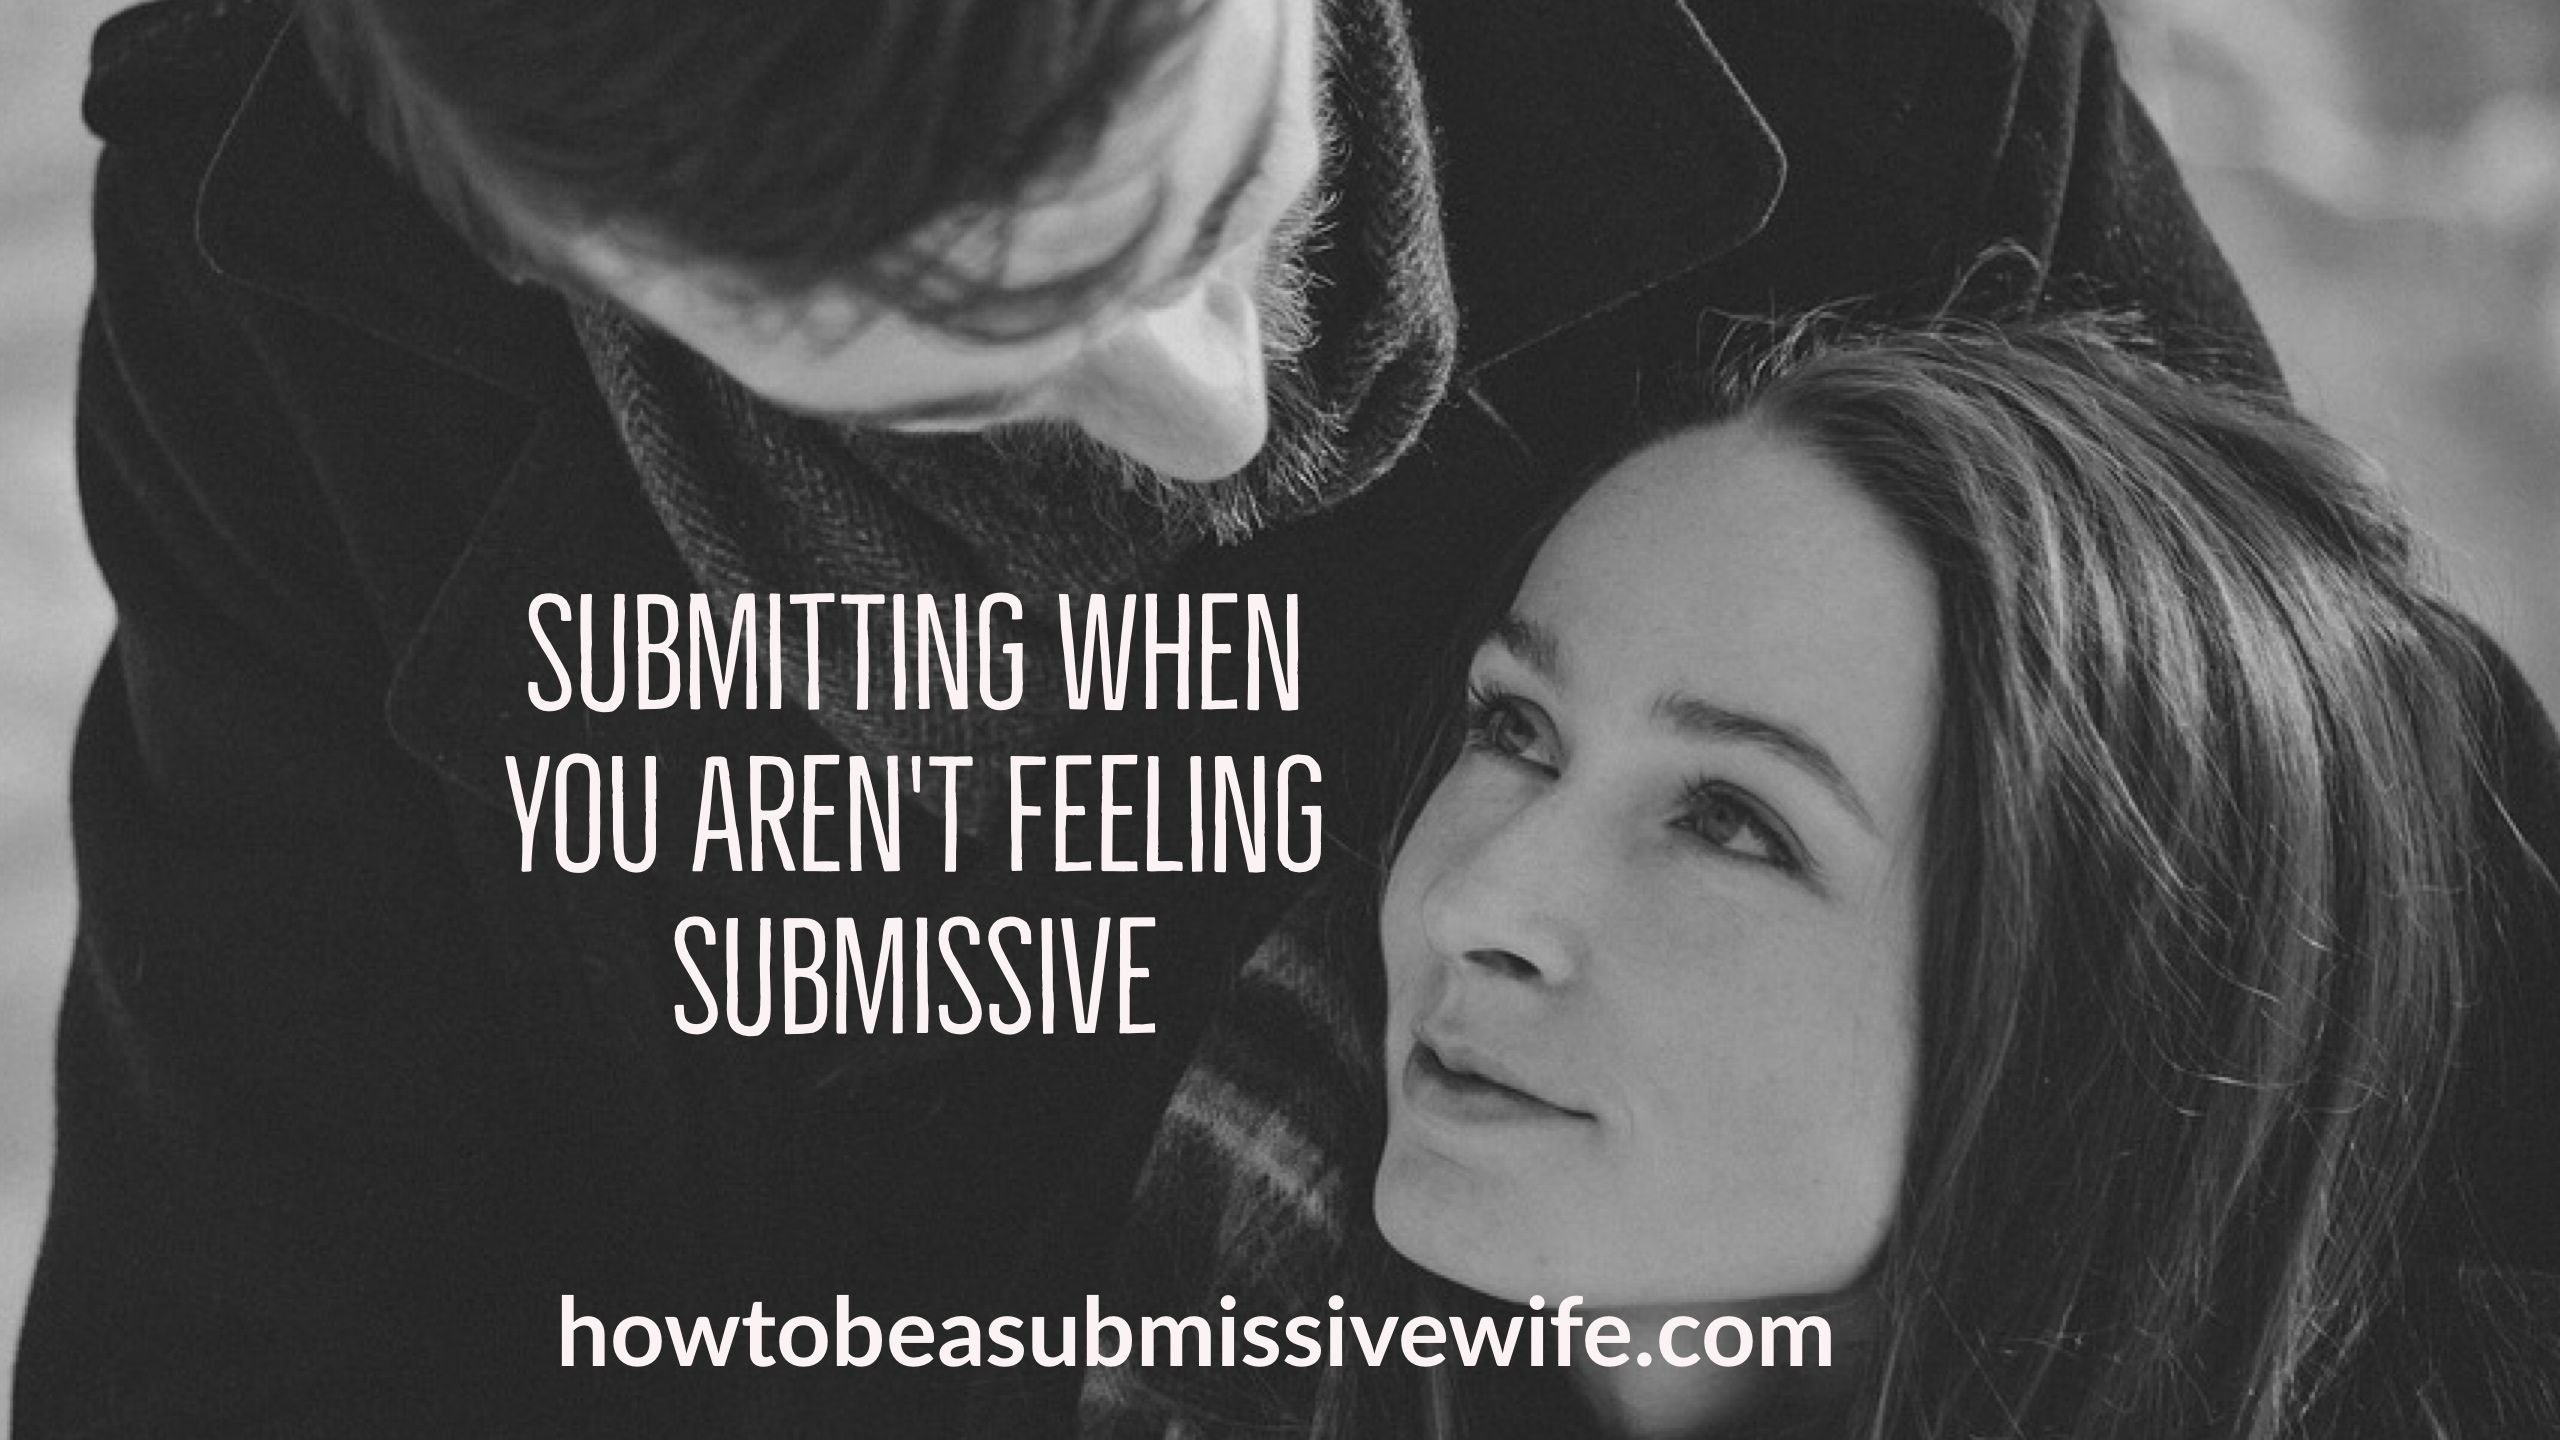 How To Tell If She Is Submissive